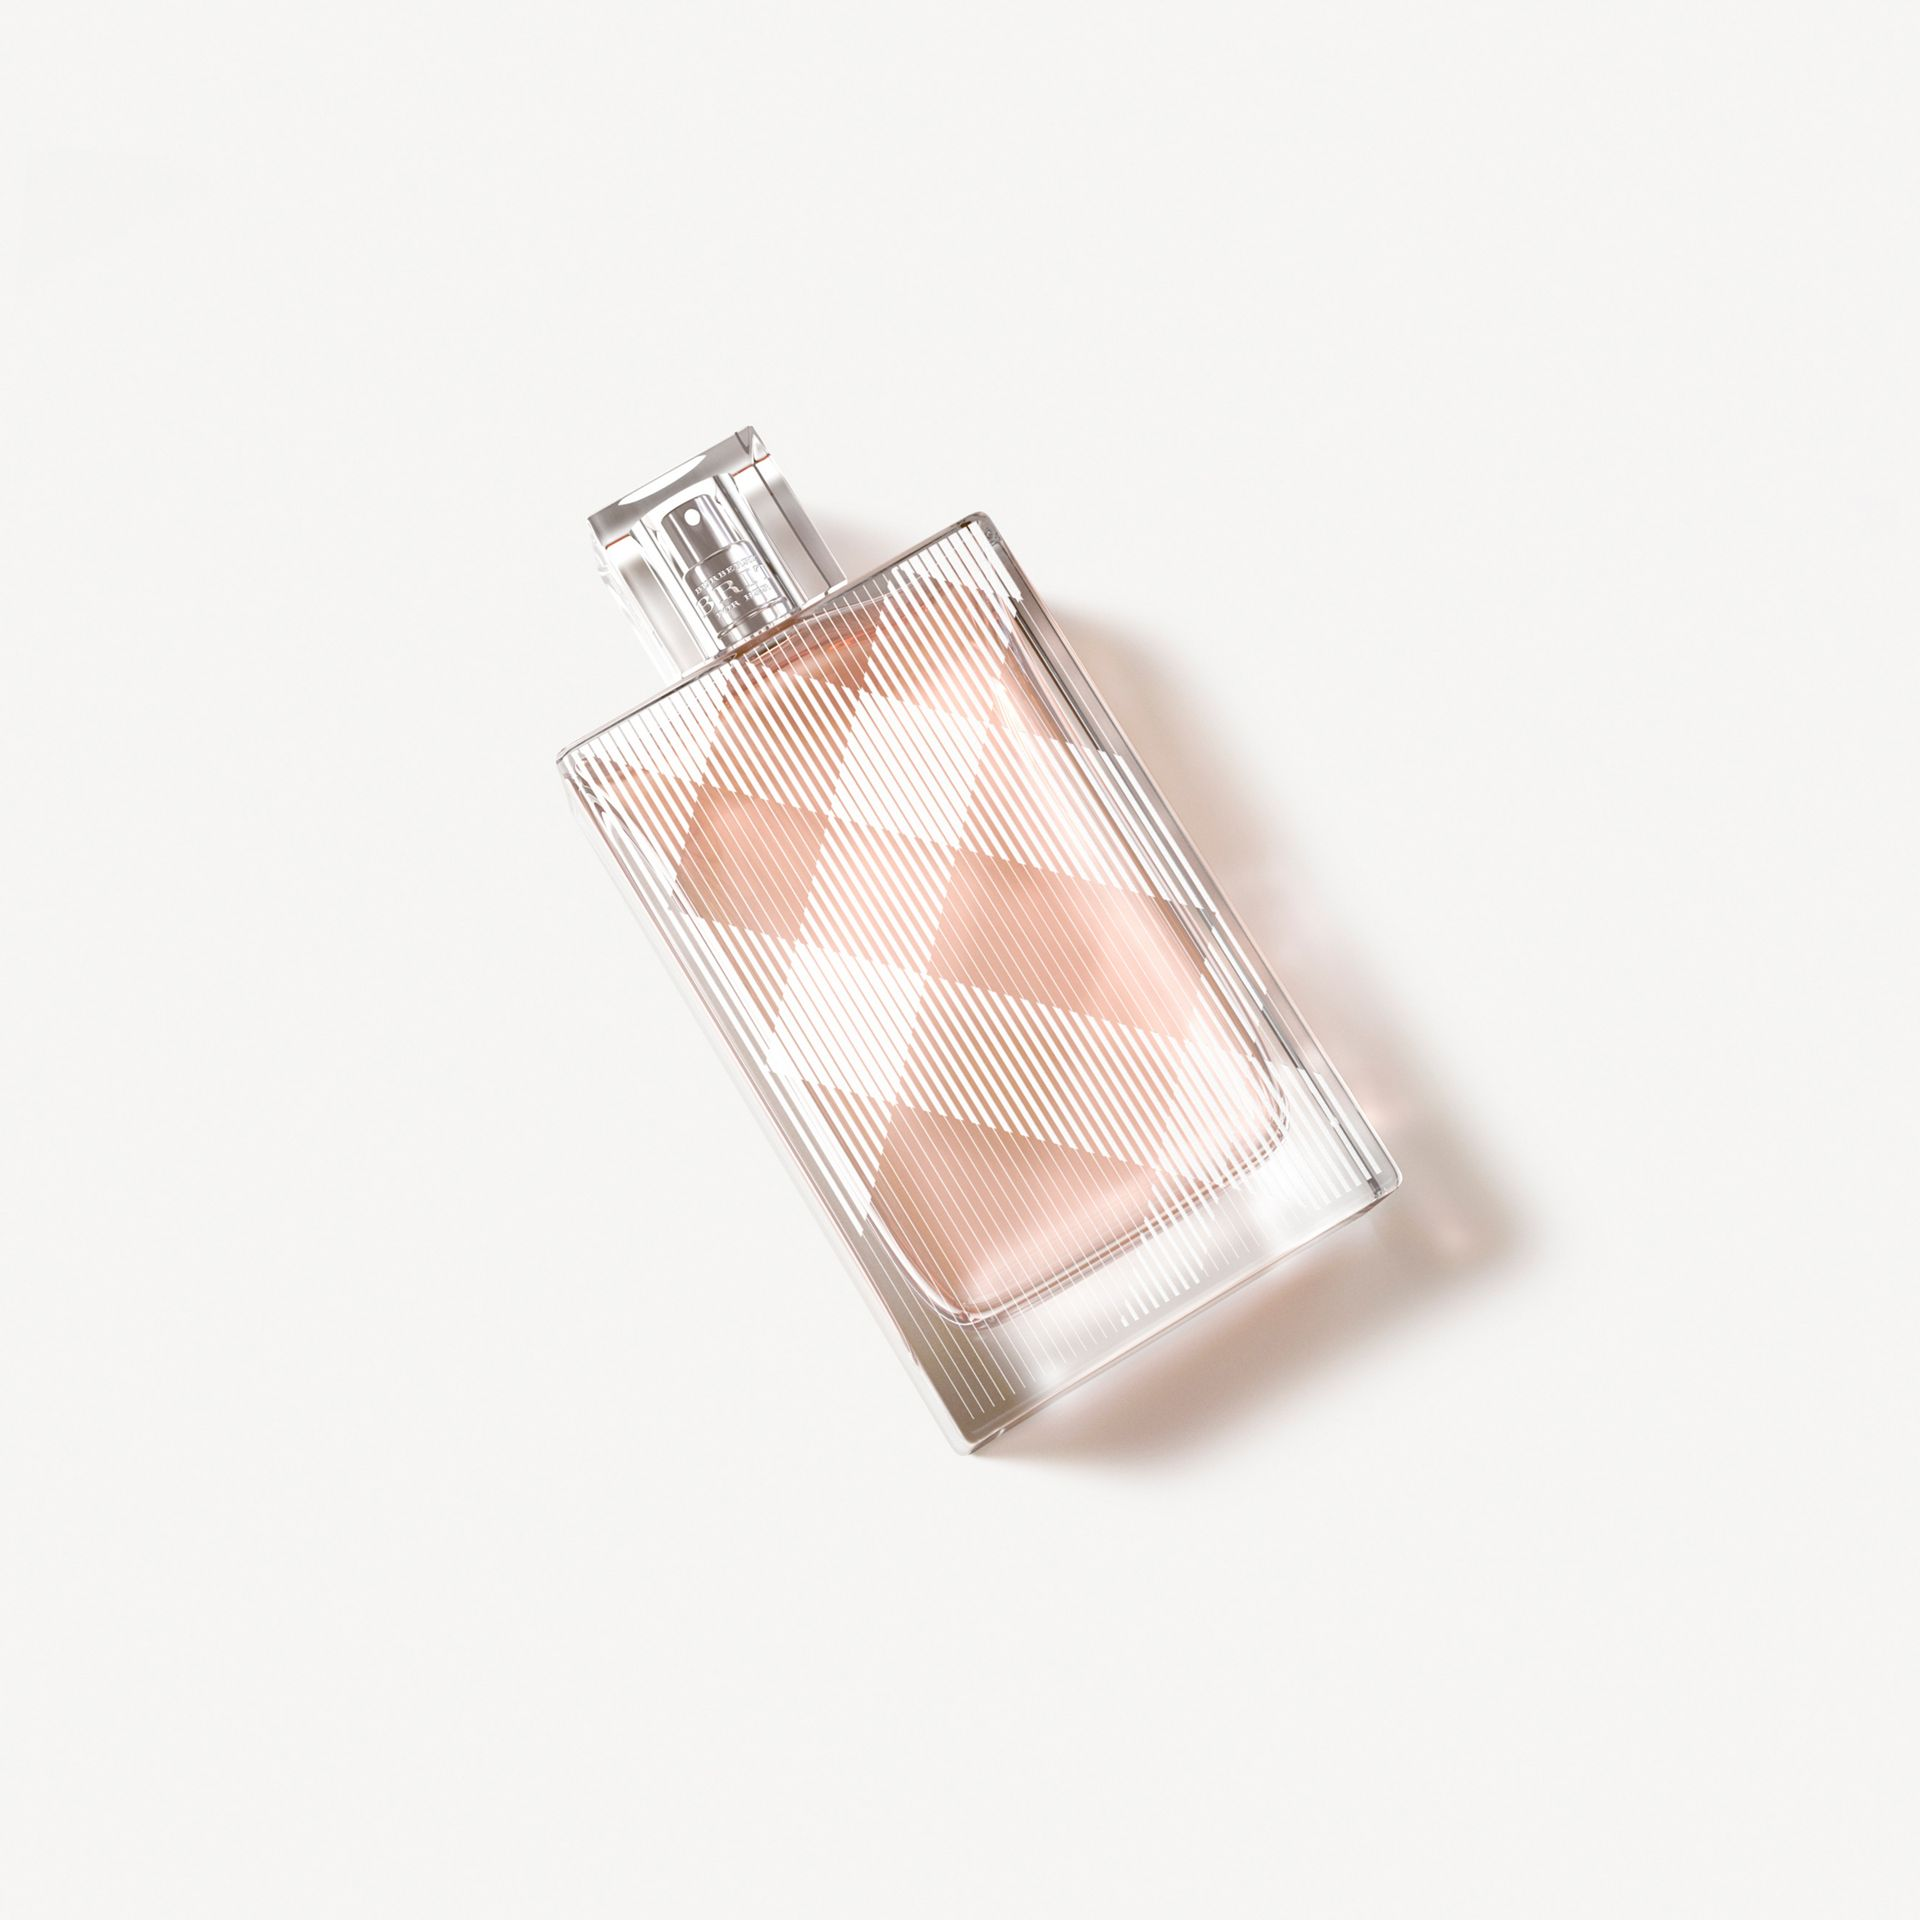 Burberry Brit For Her Eau de Toilette 100 ml - Donna | Burberry - immagine della galleria 1